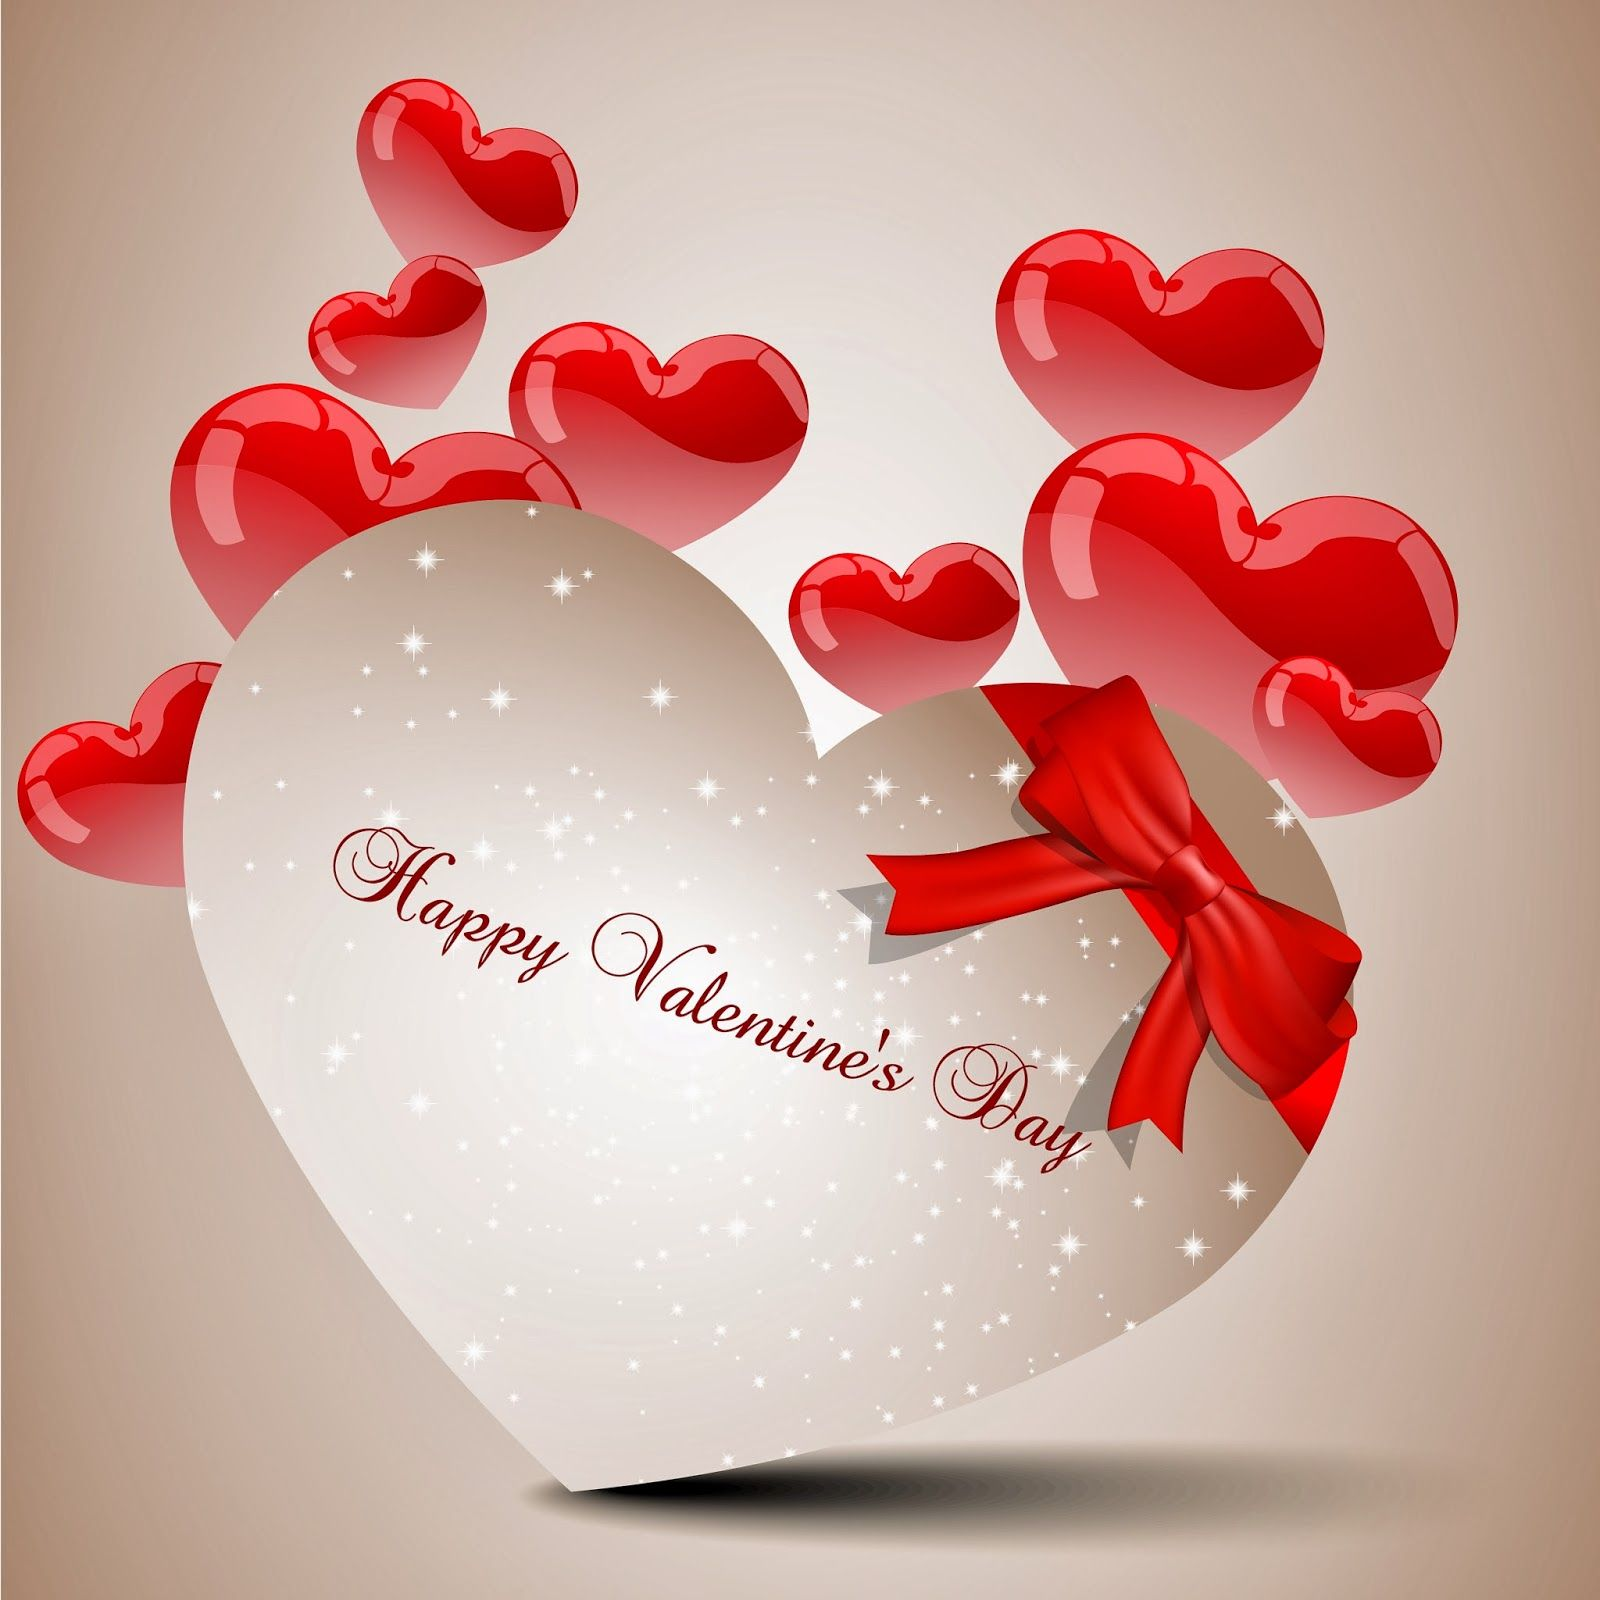 Happy Valentines Day – Most Beautiful Valentine Cards